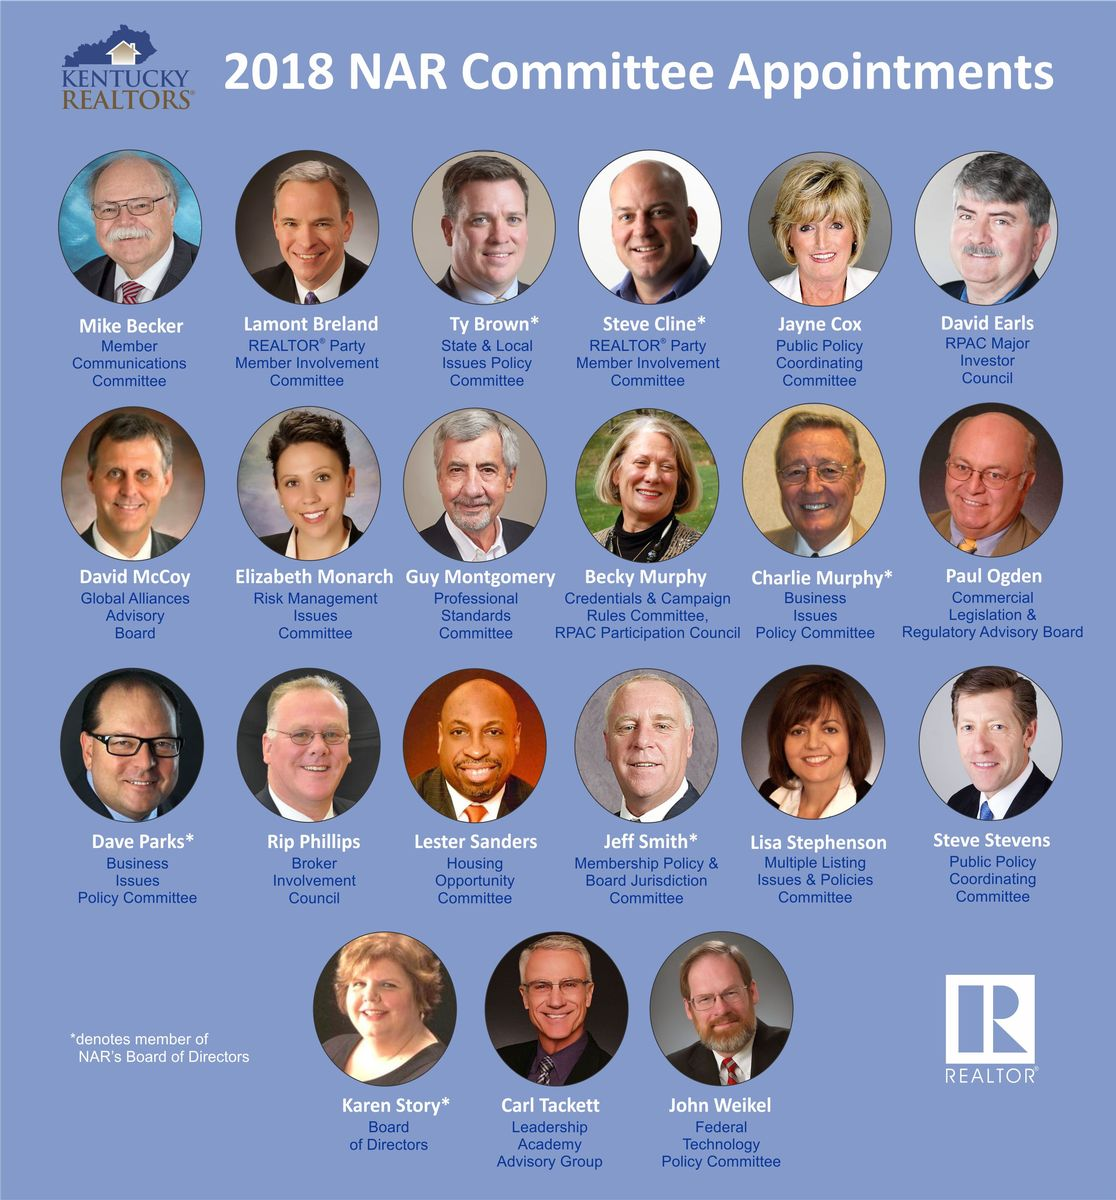 2018 NAR Committee Appointments